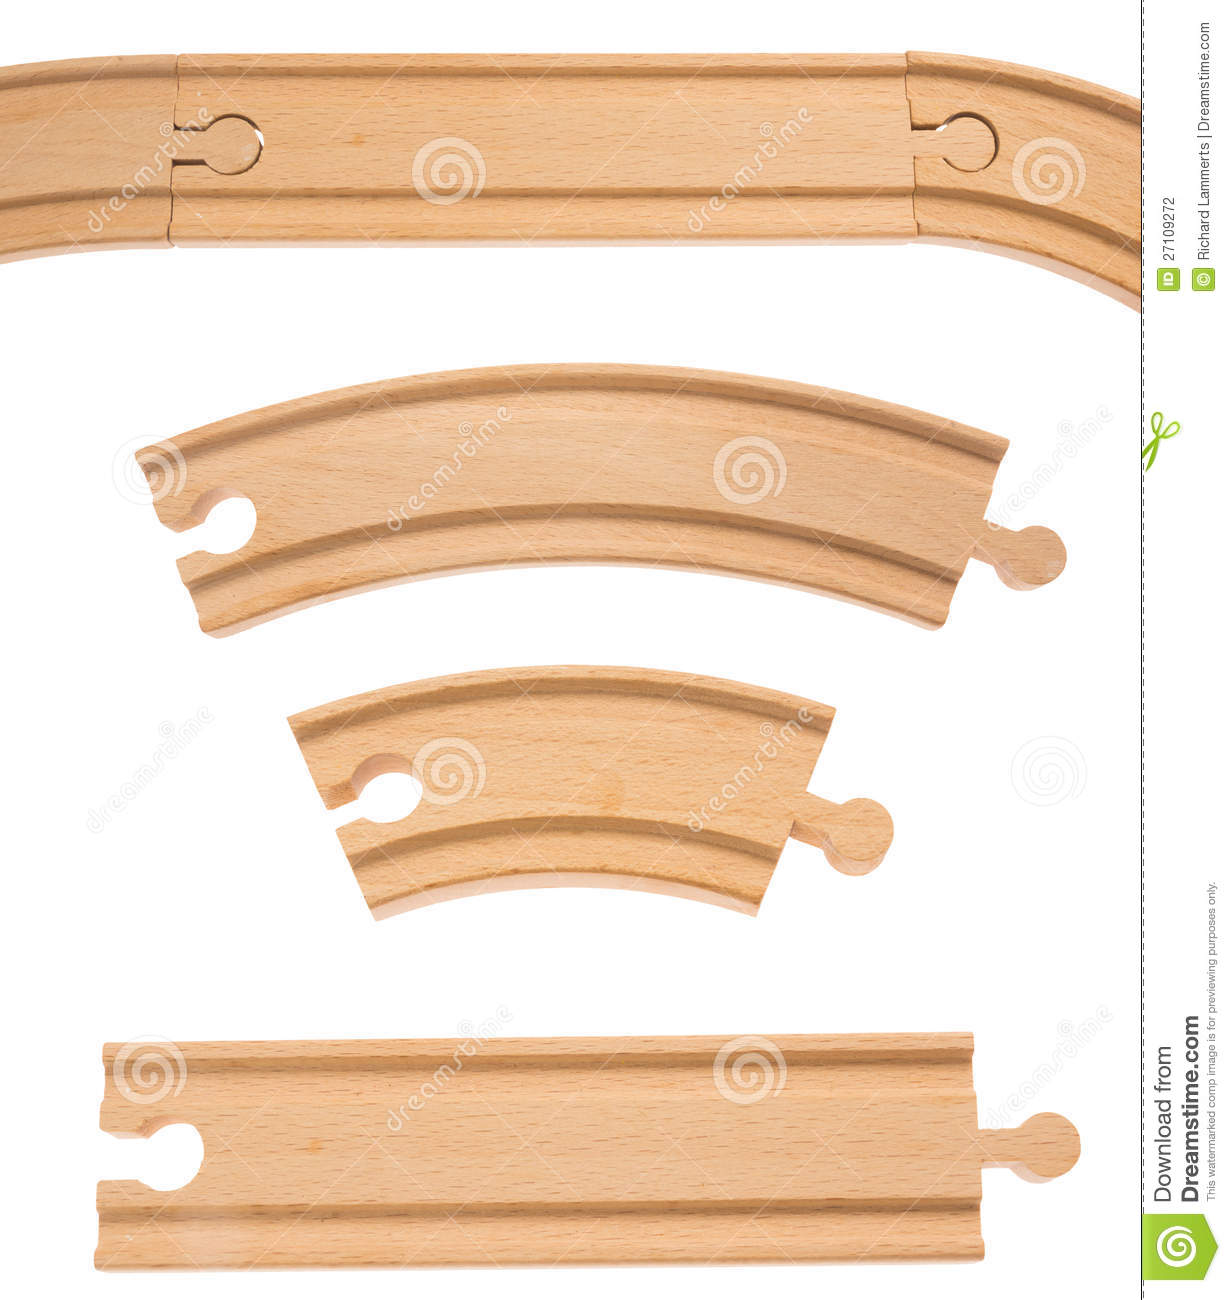 Wooden Train Tracks Wooden Railroad Track Stock Photography Image 27109272